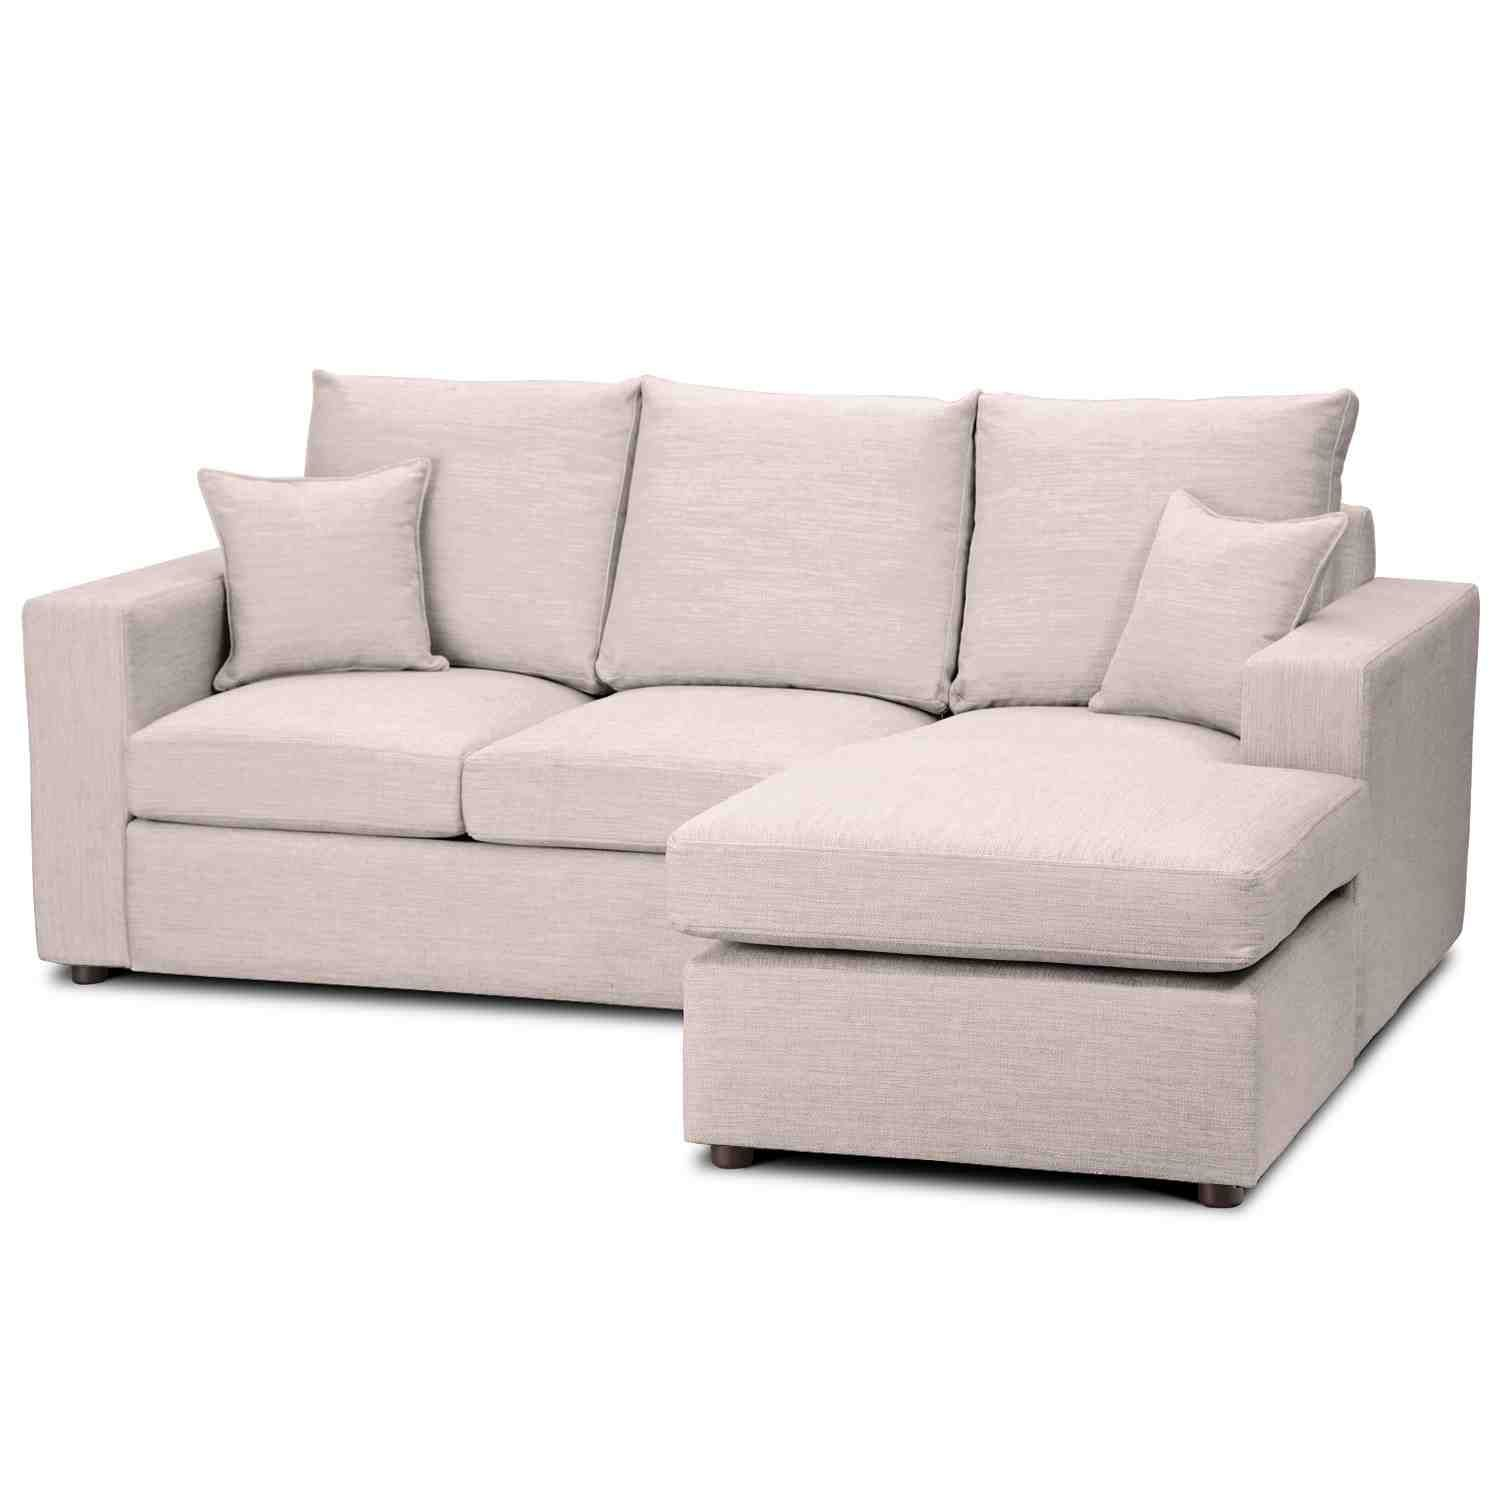 Corner Sofa, Chaise Sofa, Sofa Decor